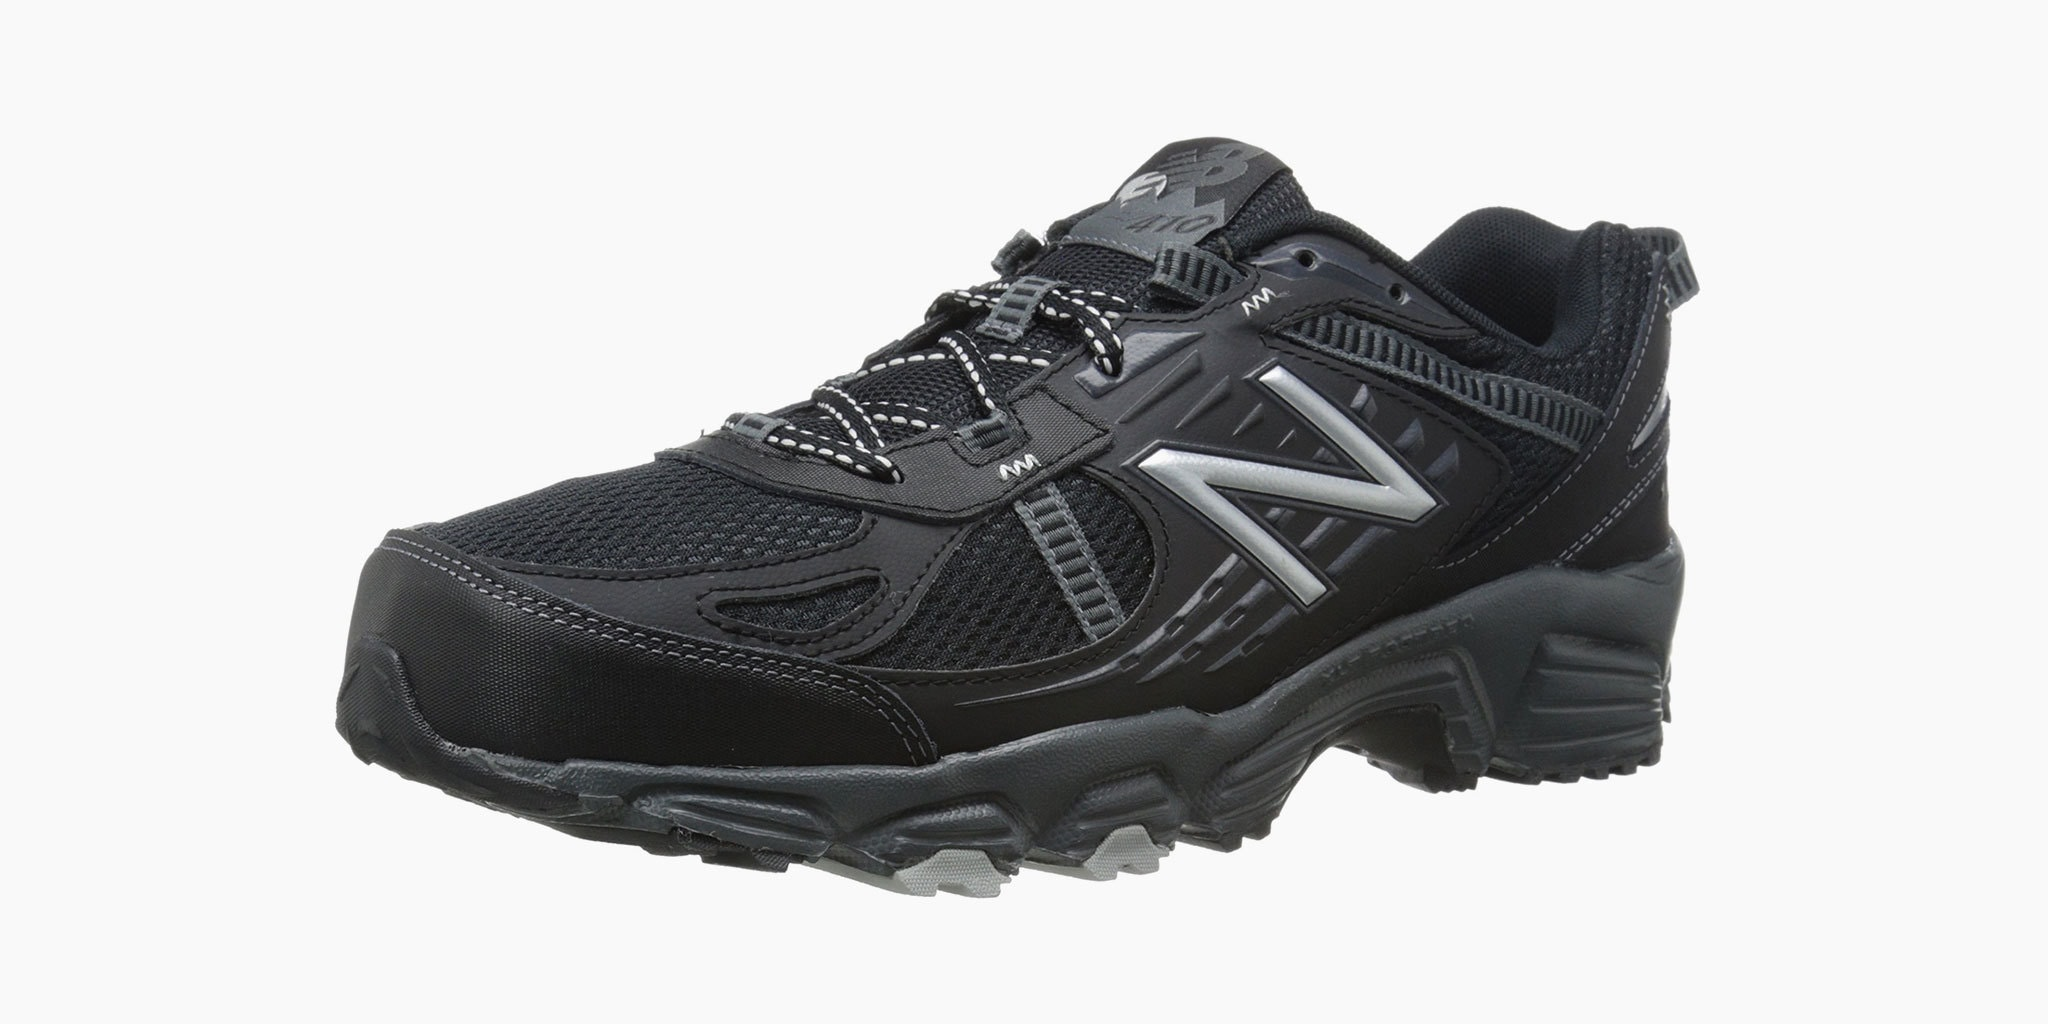 e7fb33aad68 The Best Trail Running Shoes for Flat Feet  2019 Buyer s Guide